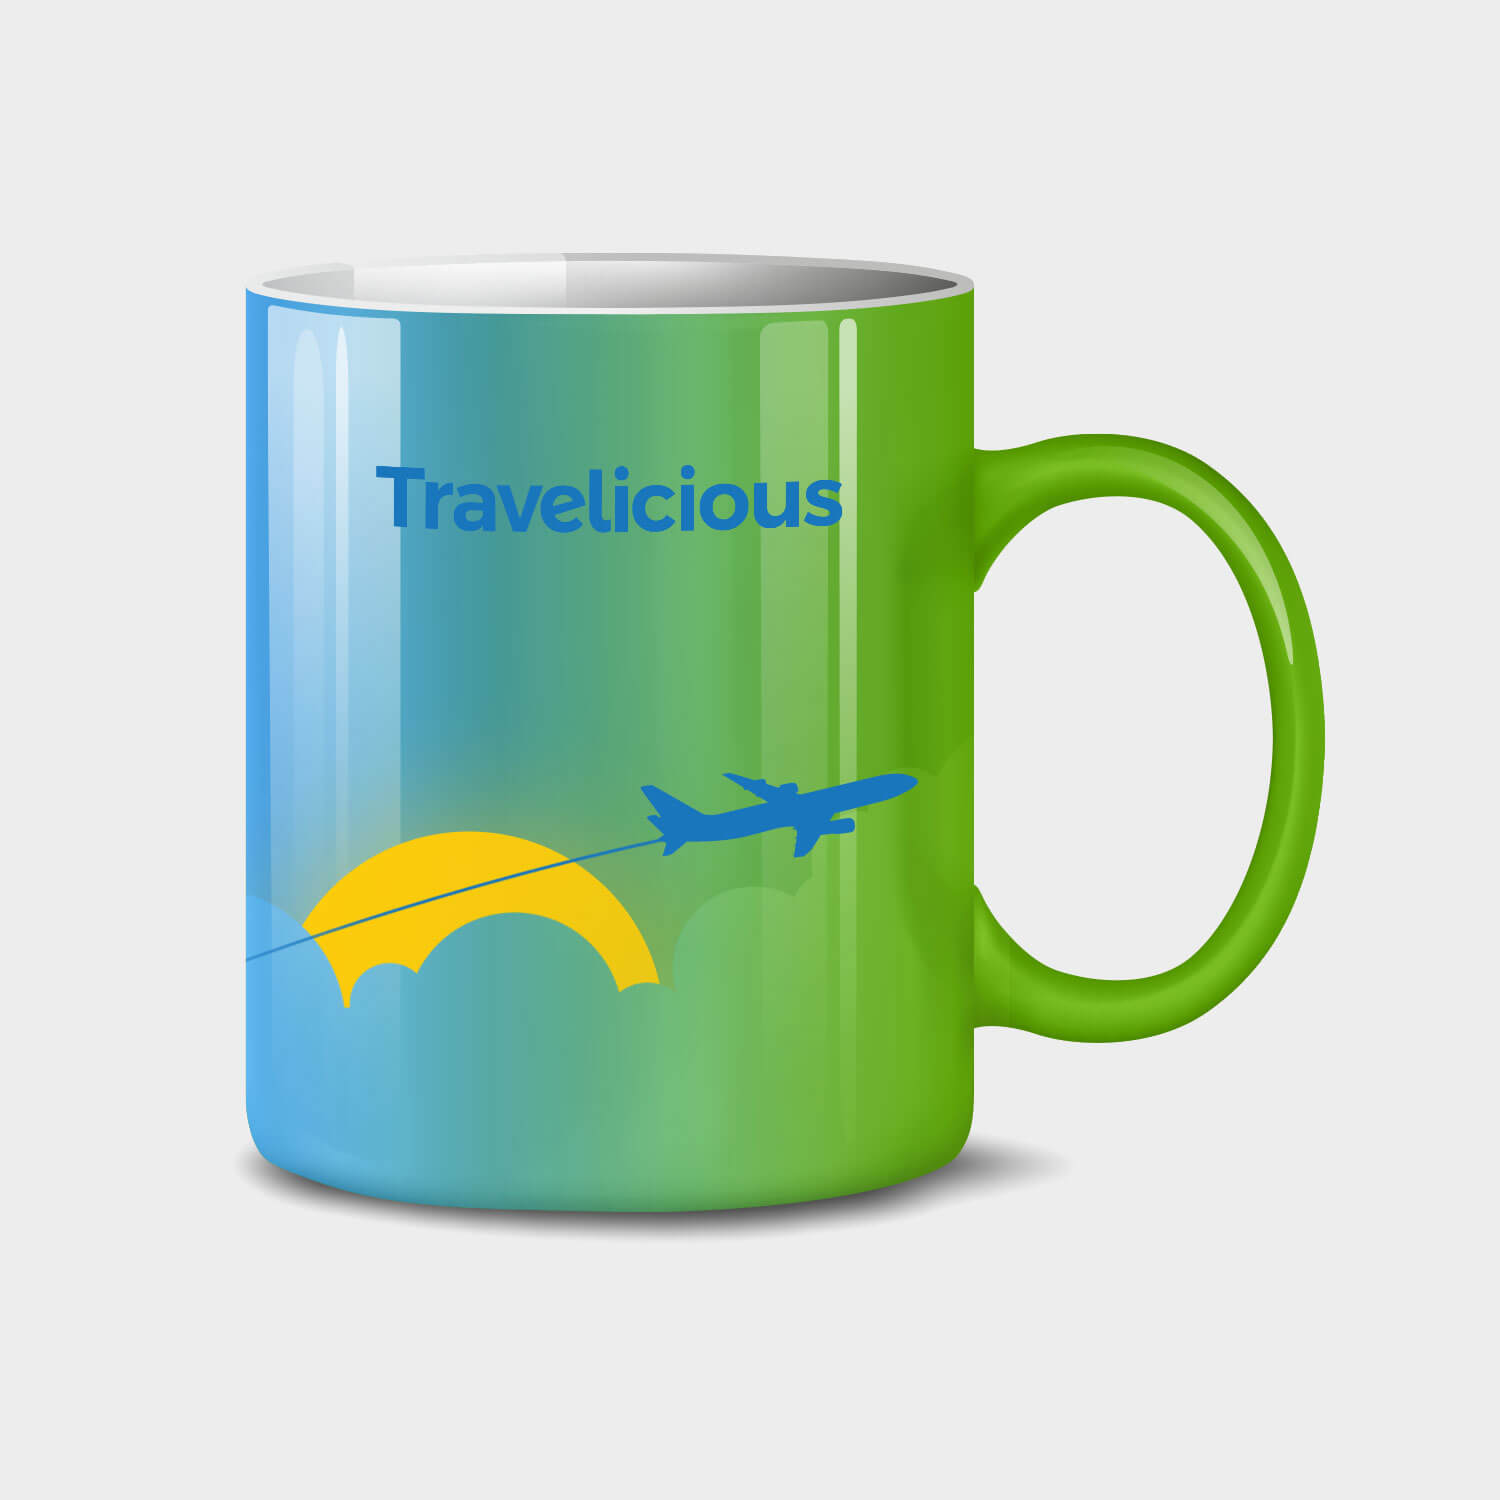 http://travelicious.bold-themes.com/main-demo/wp-content/uploads/sites/2/2018/09/mug-10.jpg